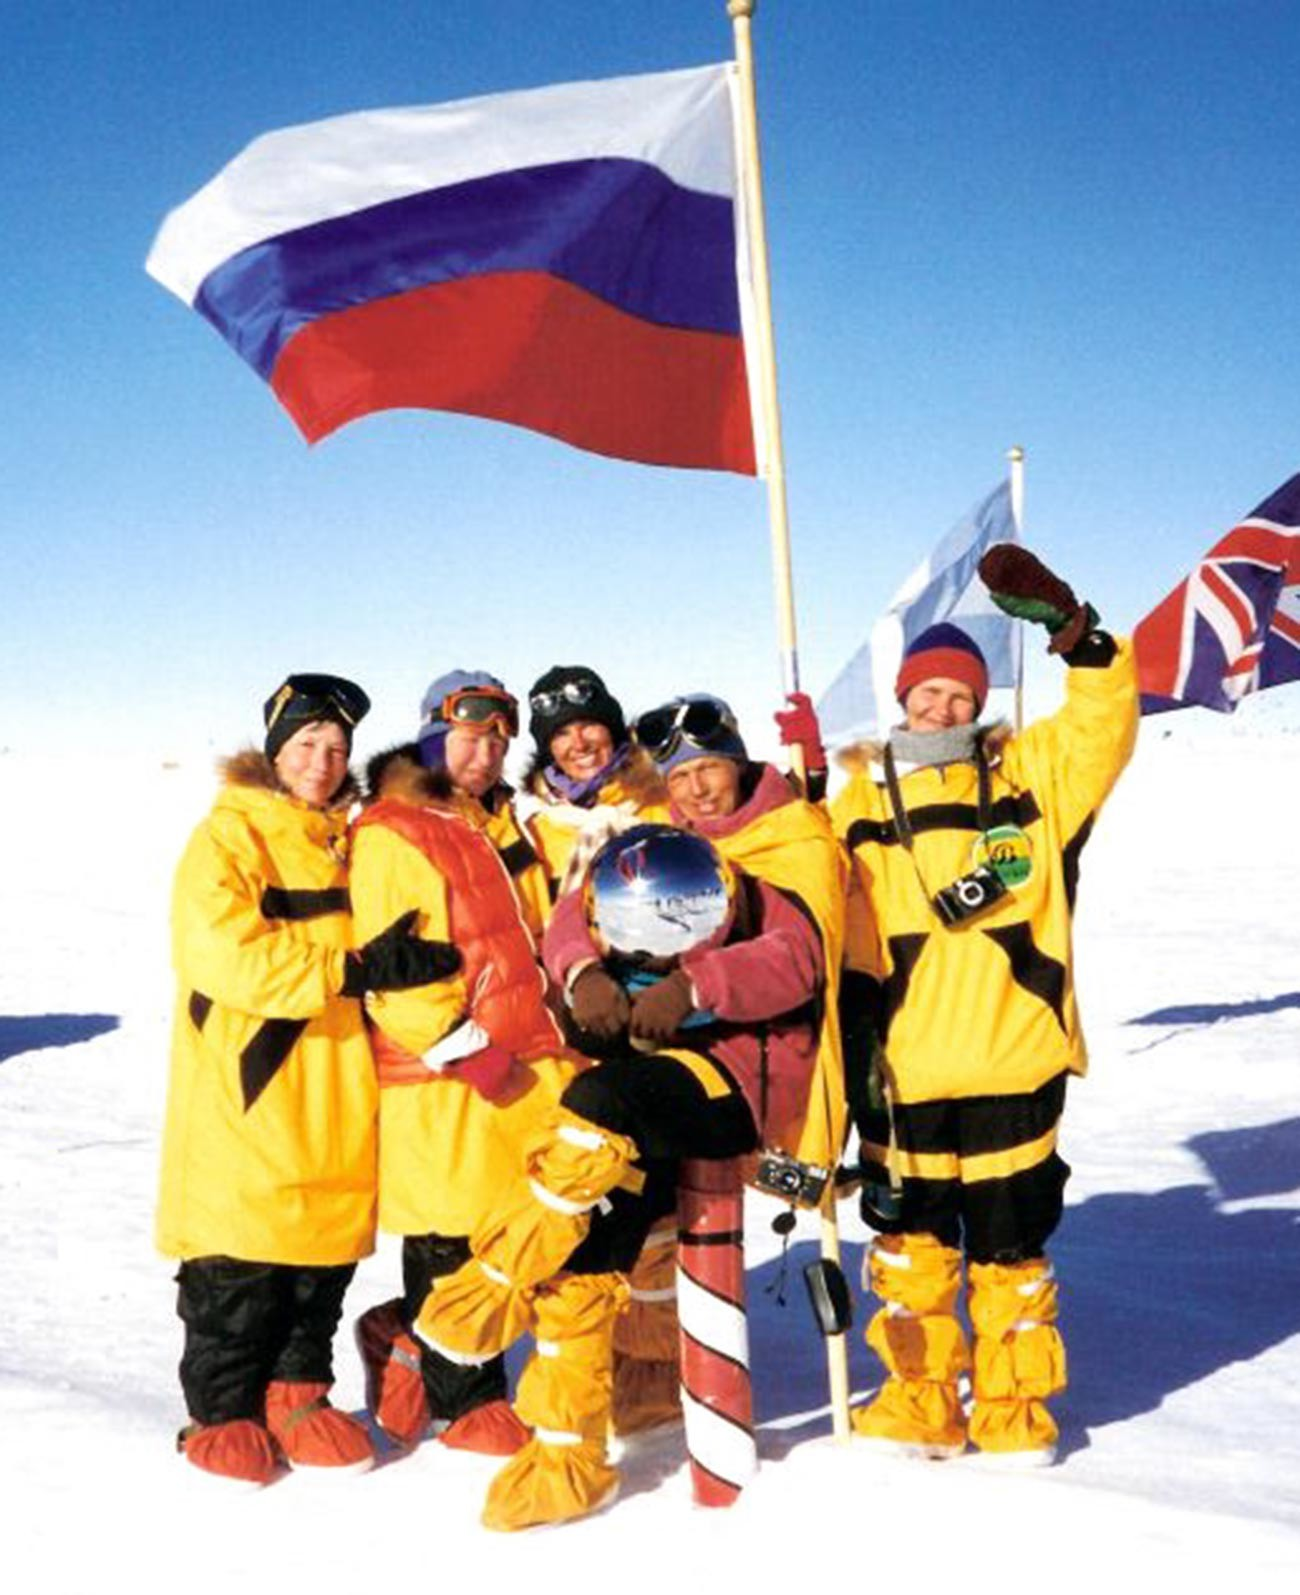 Metelitsa members at the South Pole.